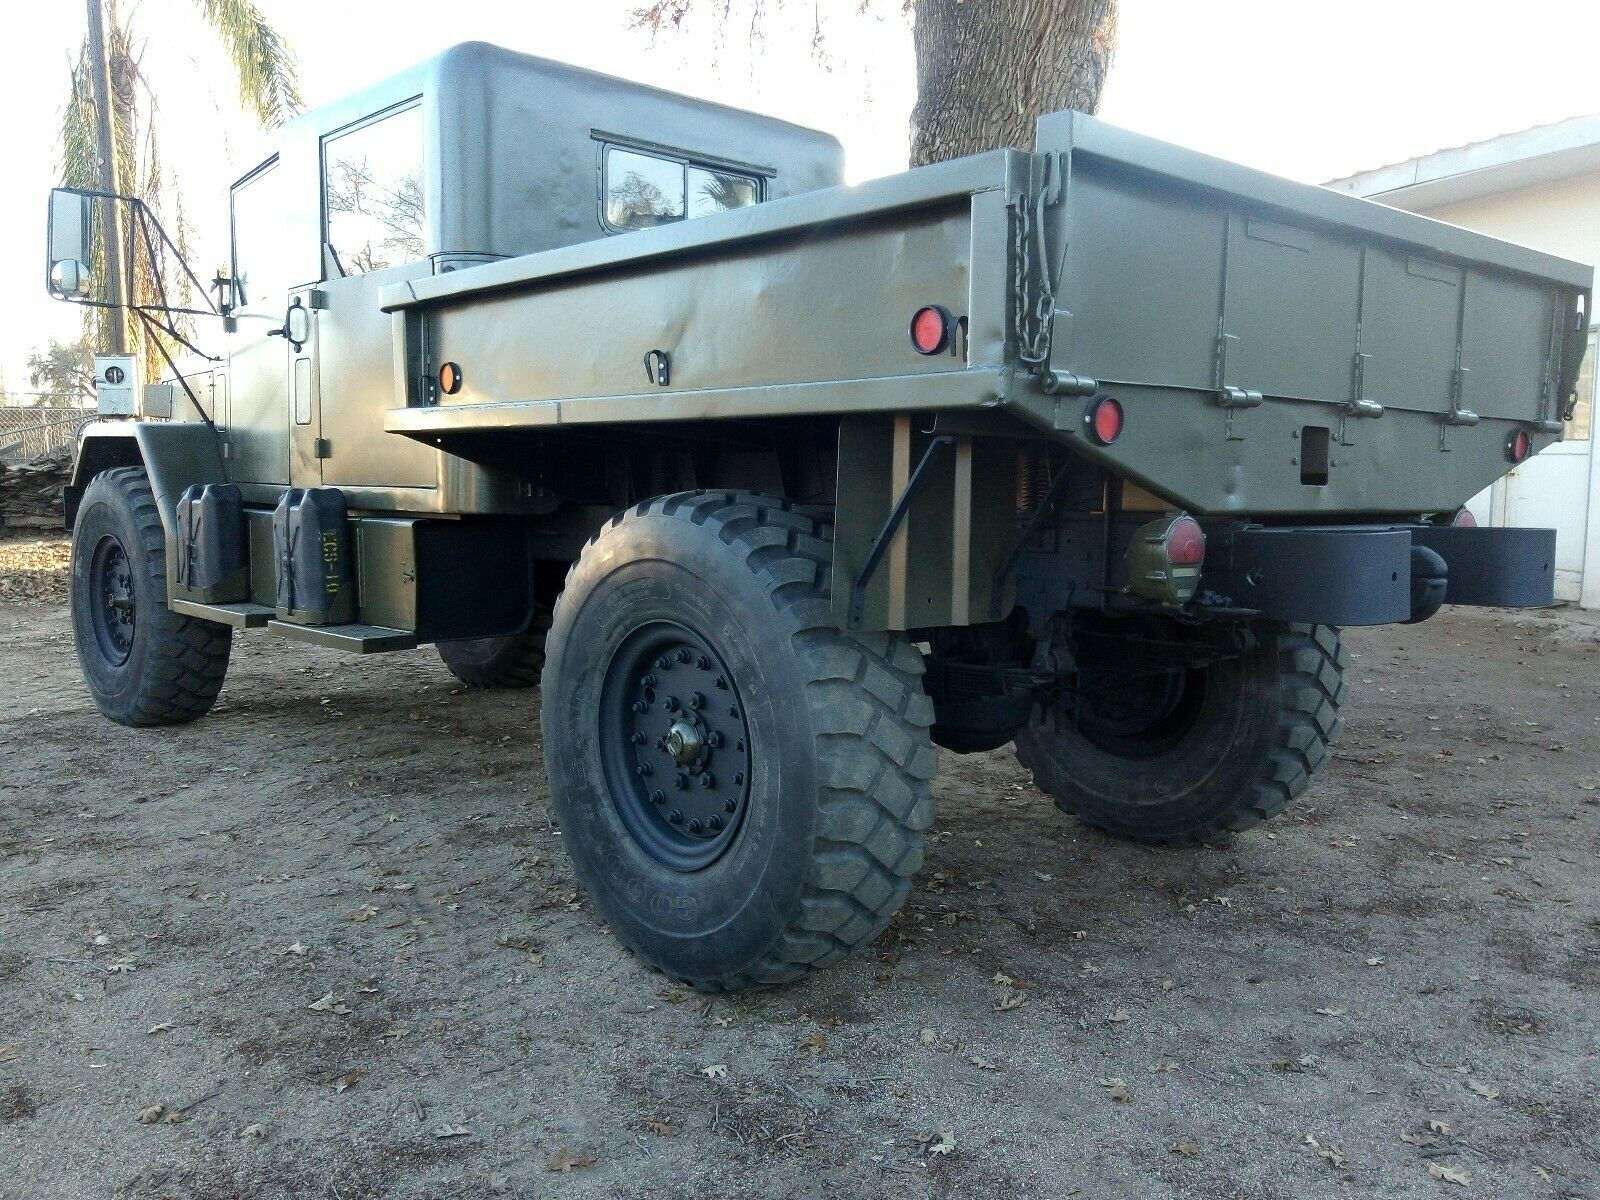 restored 1976 Jeep Kaiser M35a2 Deuce and a Half military